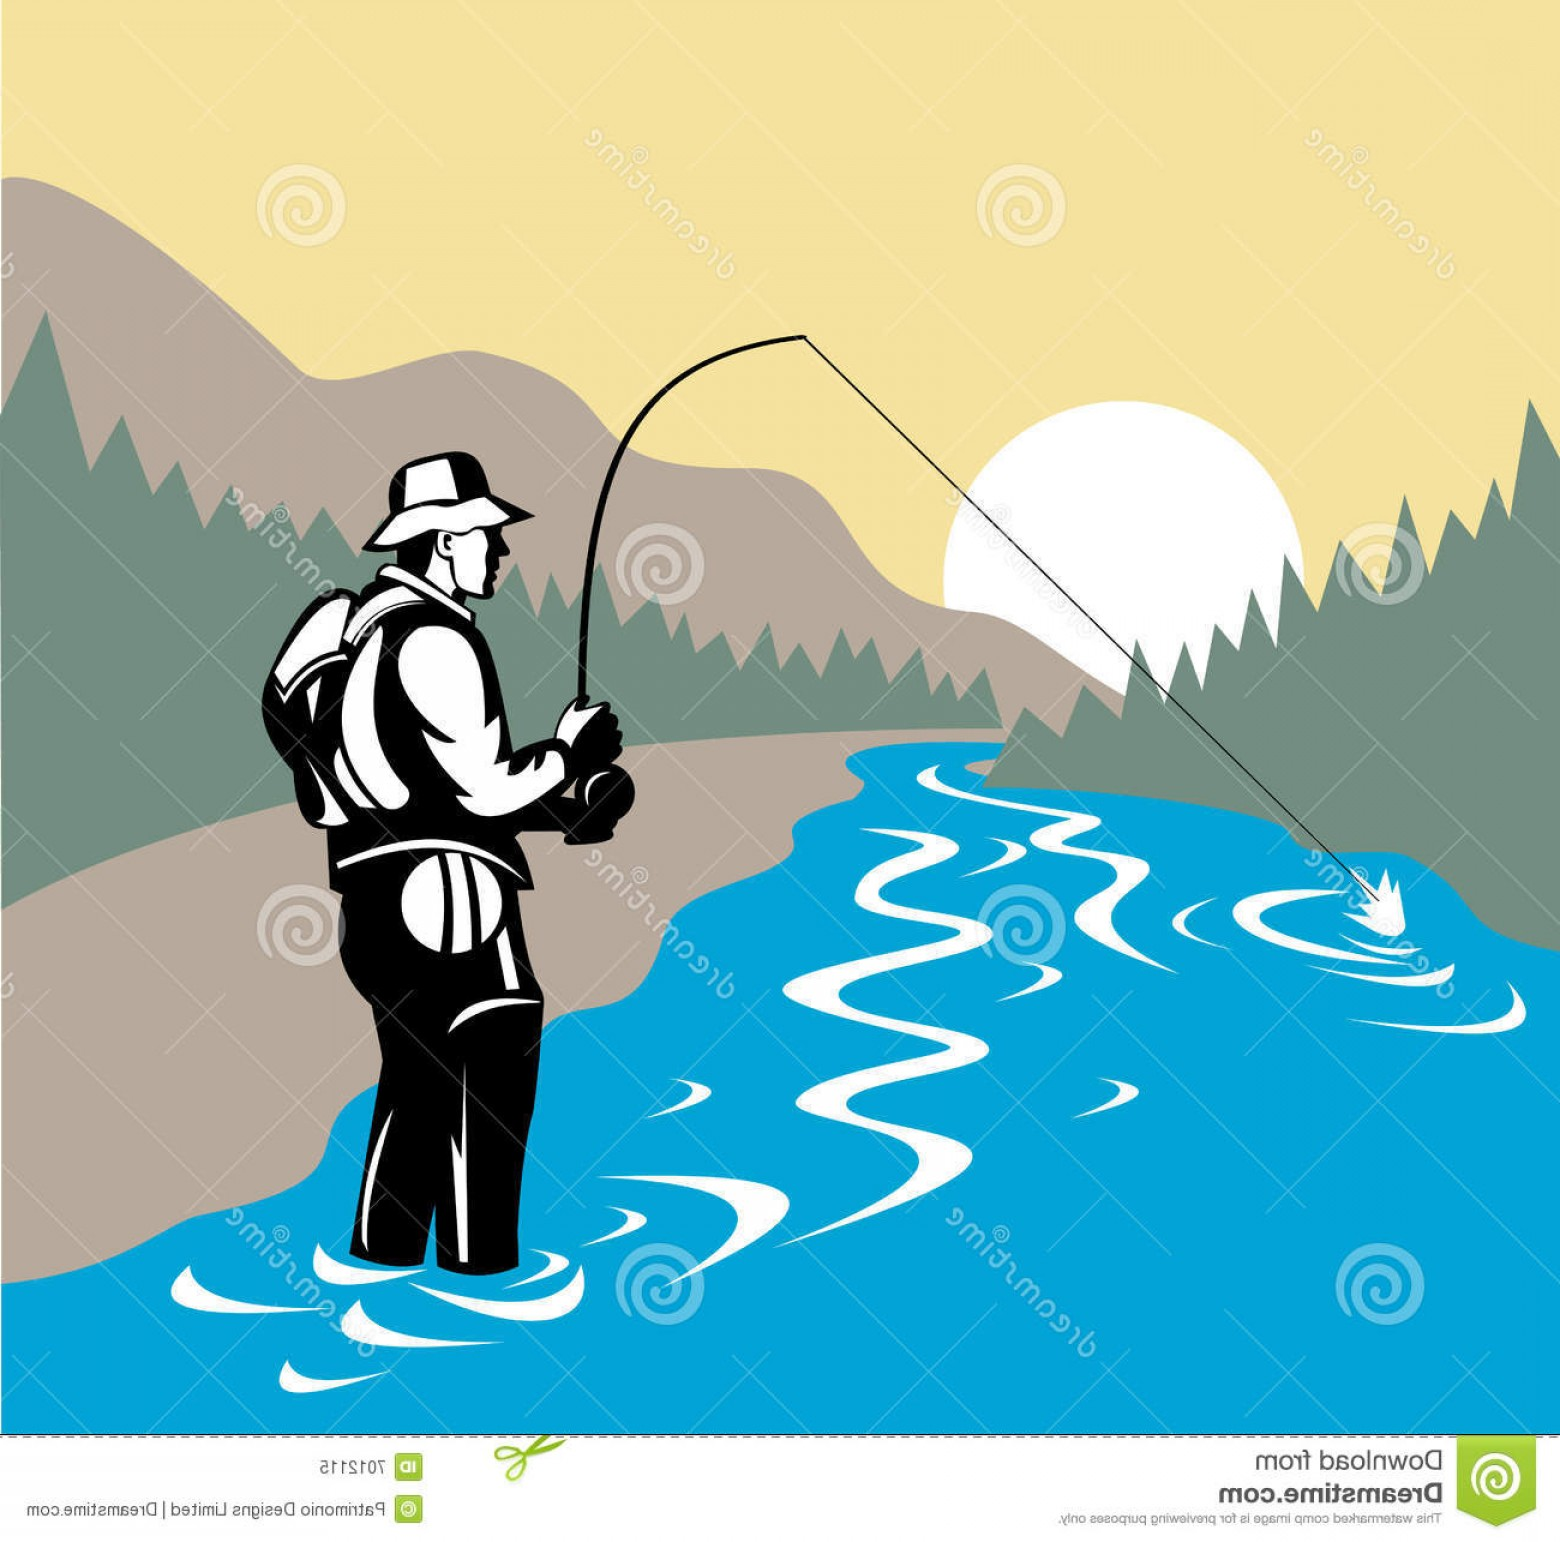 Detailed Vector Art Fly Fisherman: Royalty Free Stock Photo Fly Fishing Image